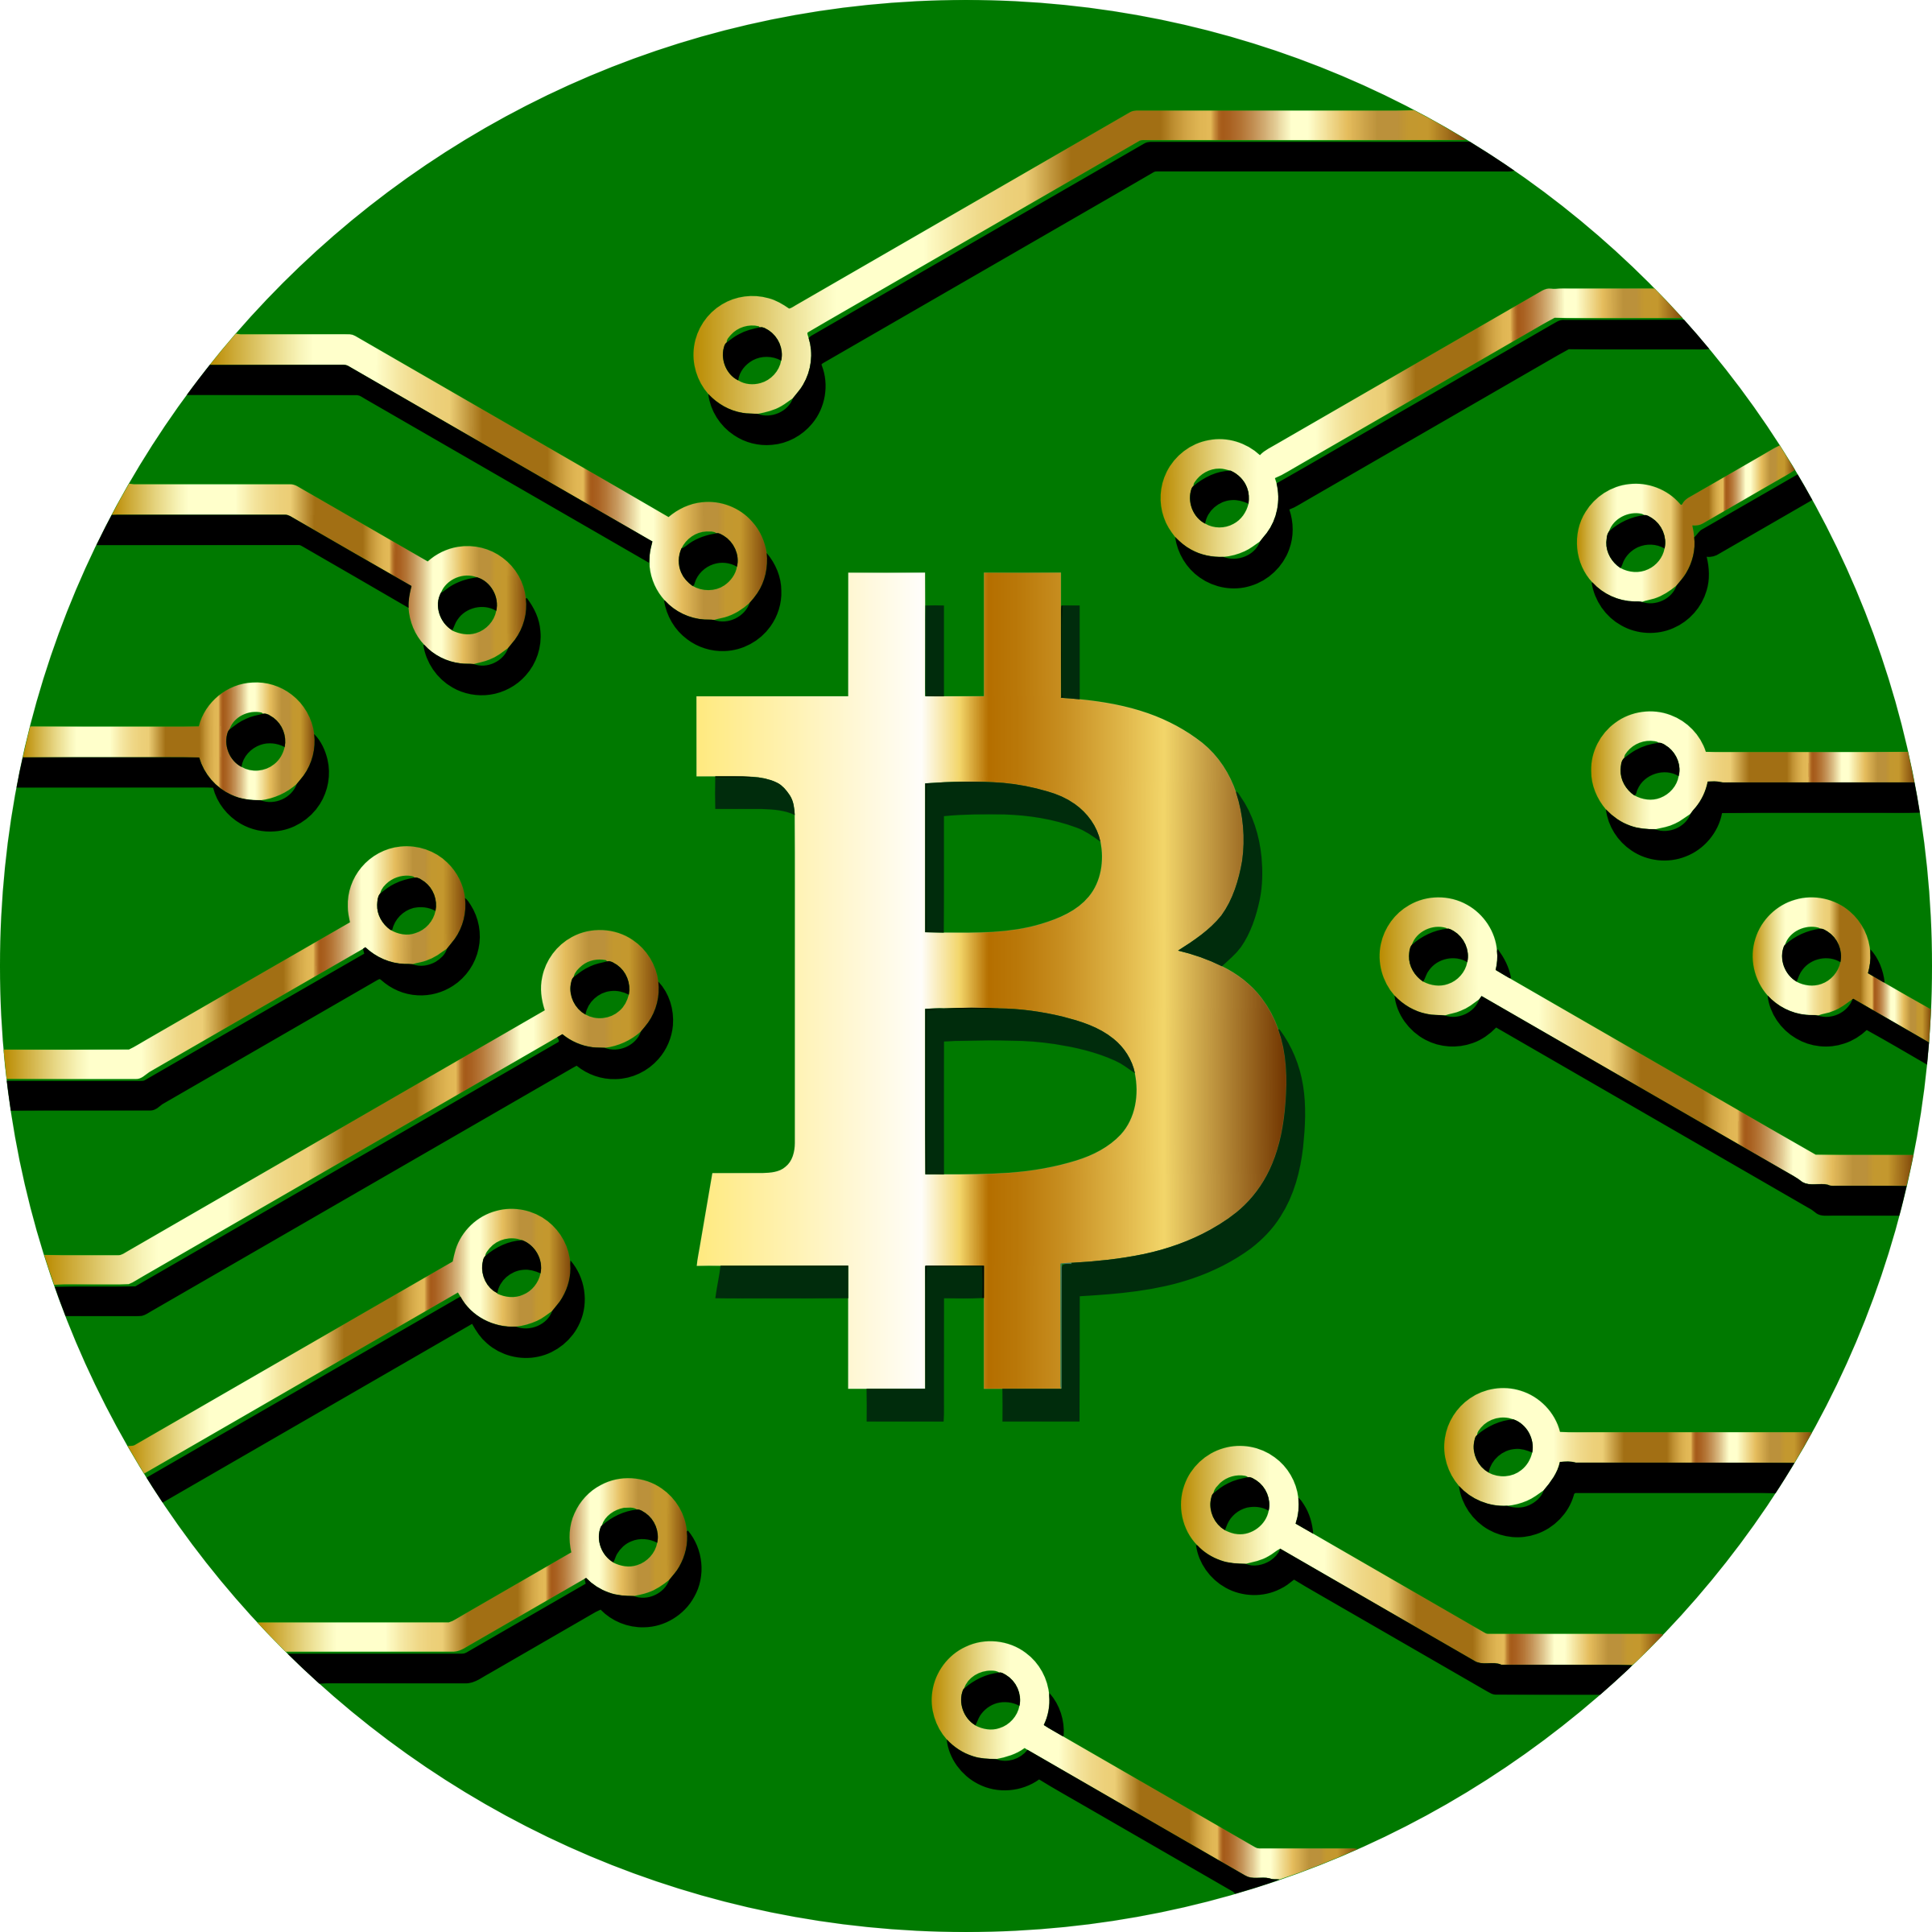 Exchanigng money for gold clipart jpg freeuse library Clipart - Bitcoin Currency Gold jpg freeuse library